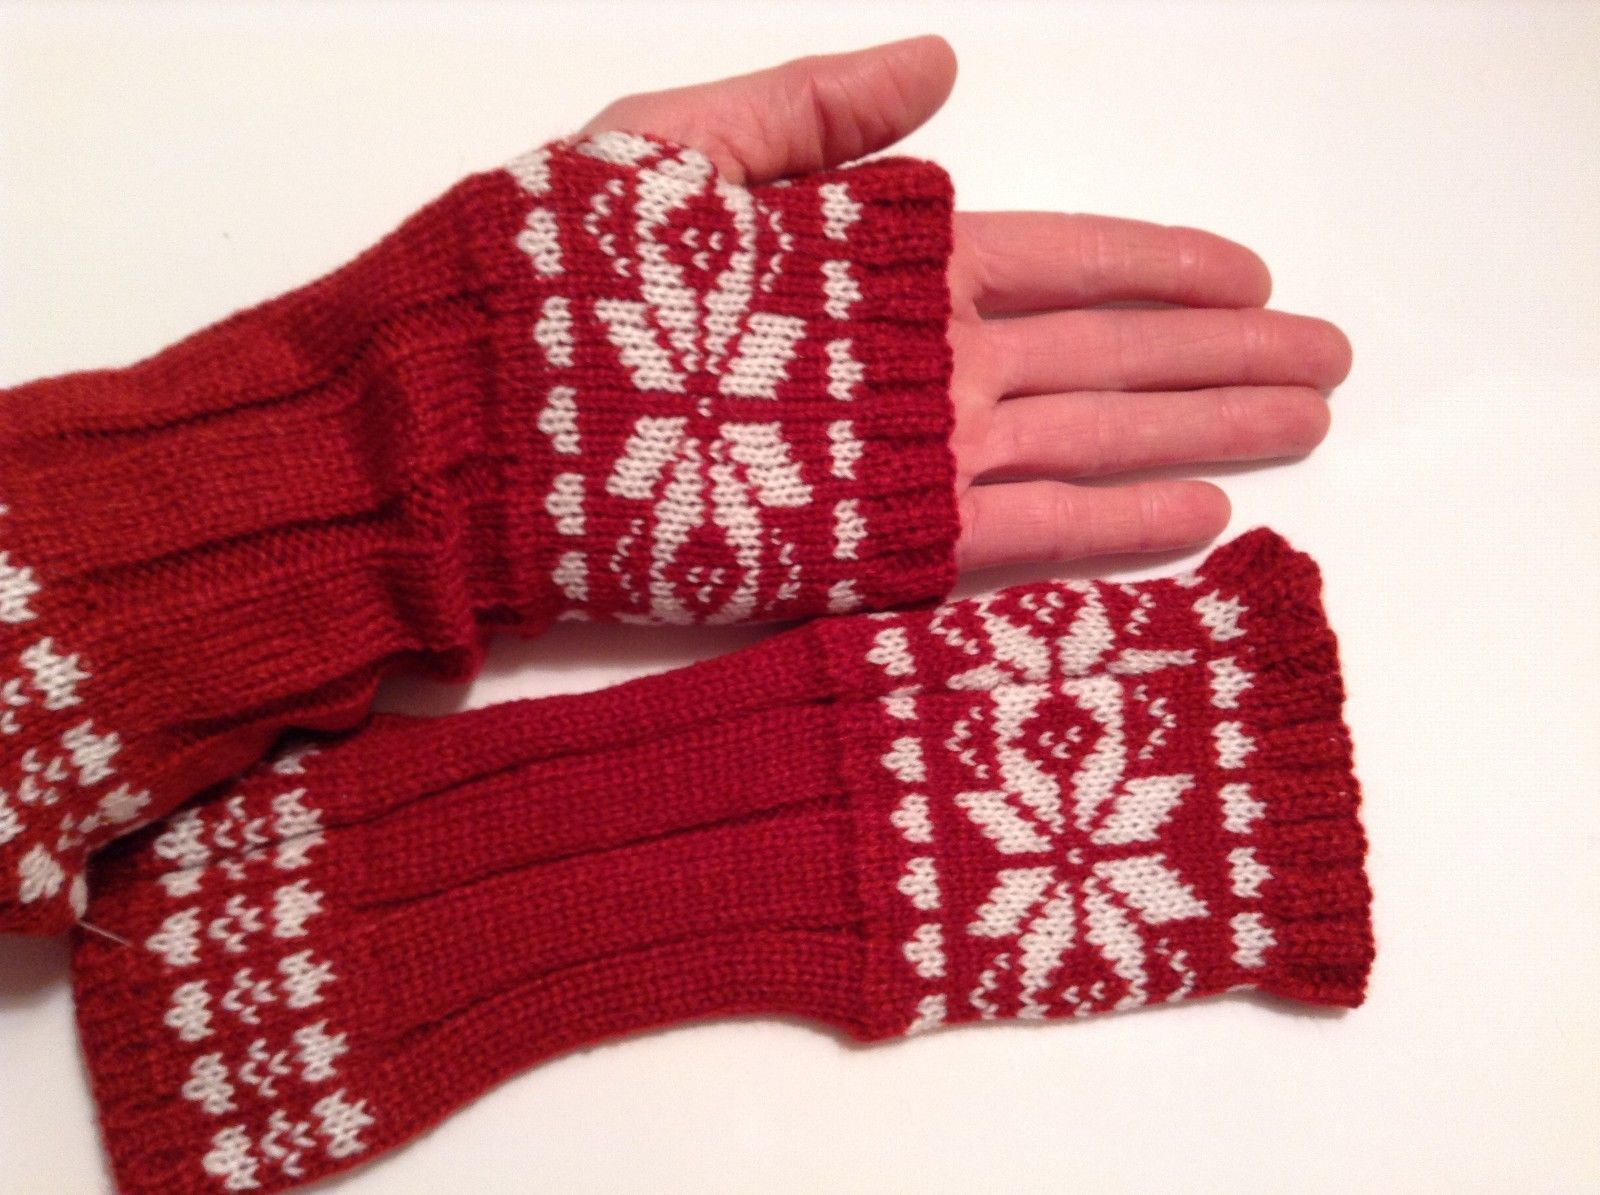 Fun Snowflake snow knit fingerless mittens 6 color choices holiday gift